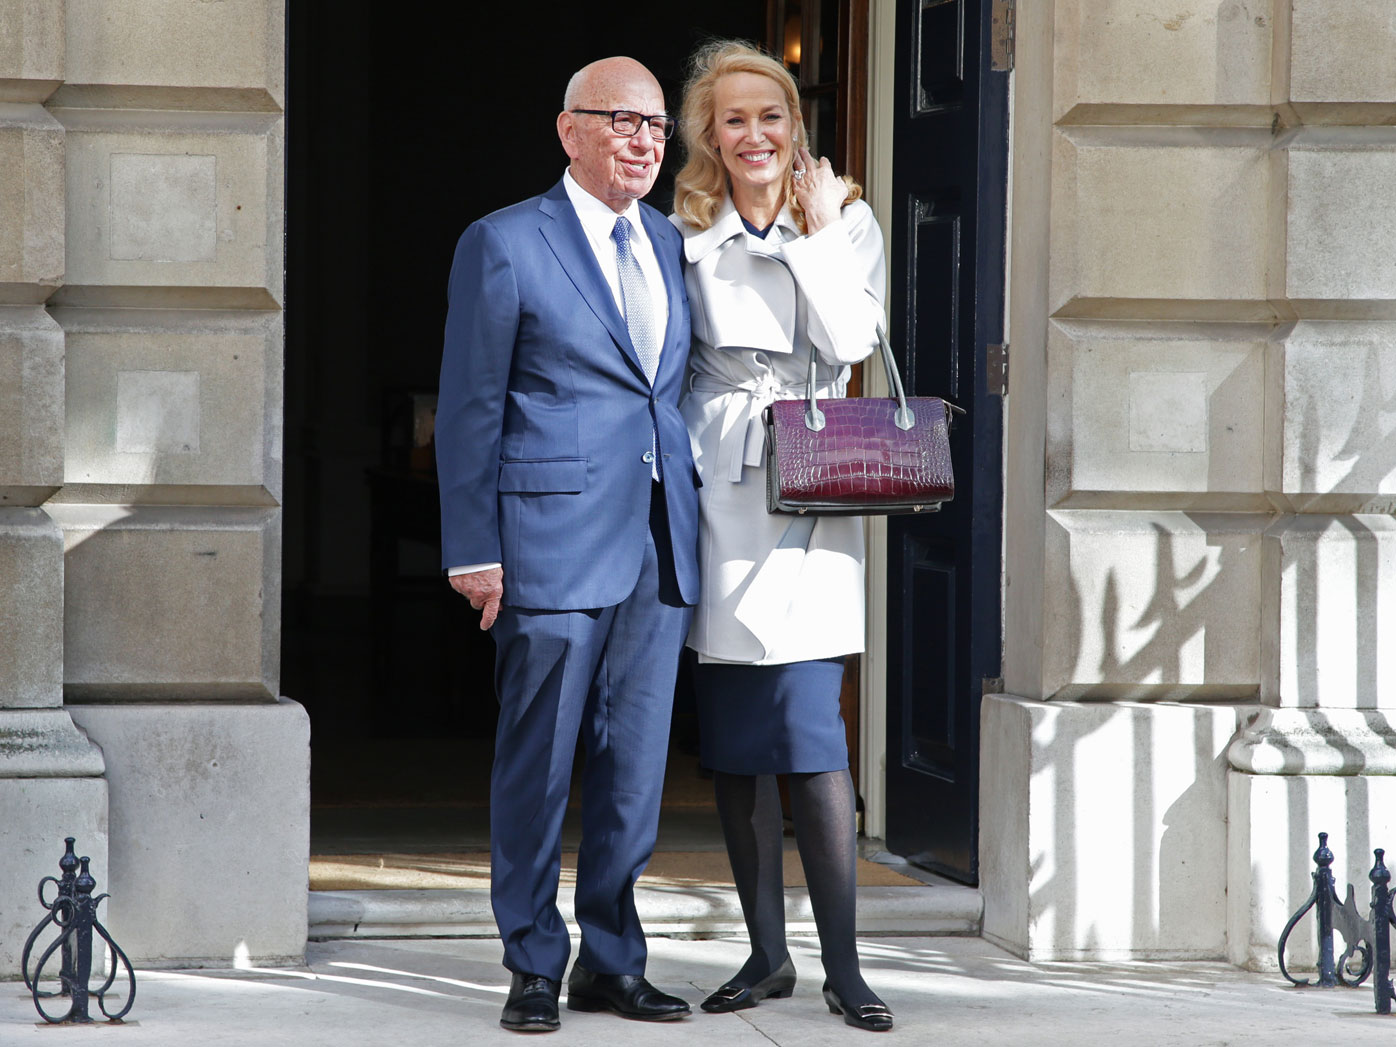 Rupert Murdoch marries Jerry Hall in private ceremony at London palace